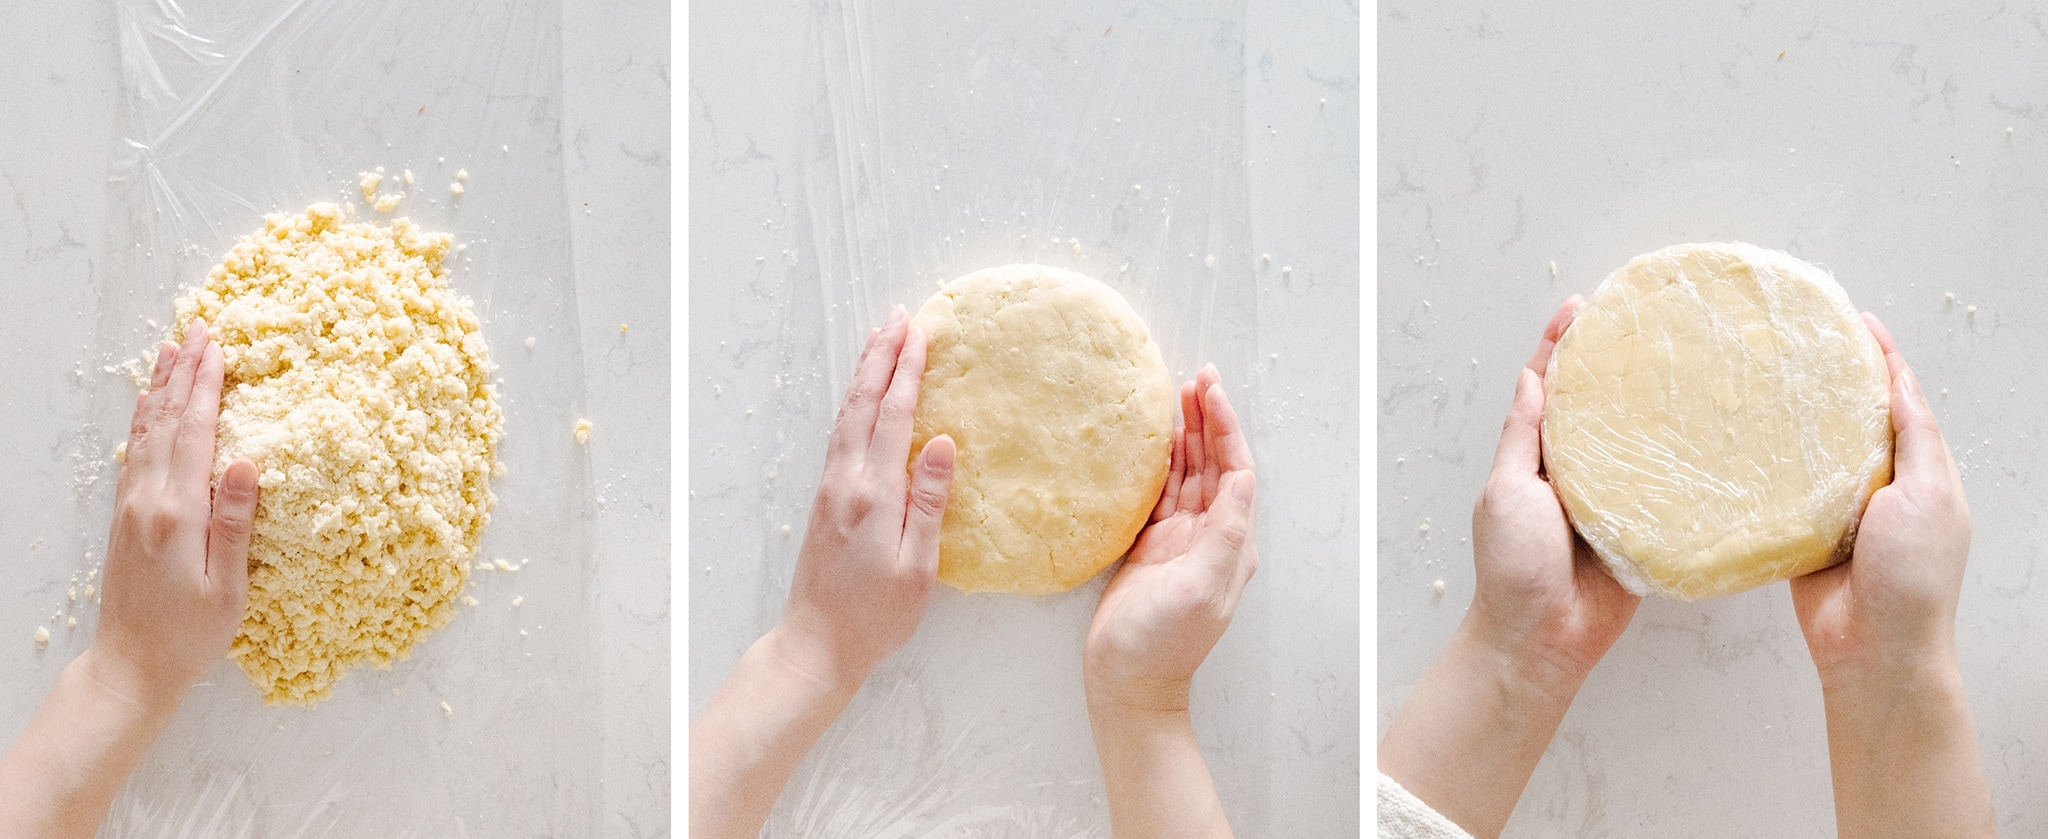 Pressing dough into a disc with hands